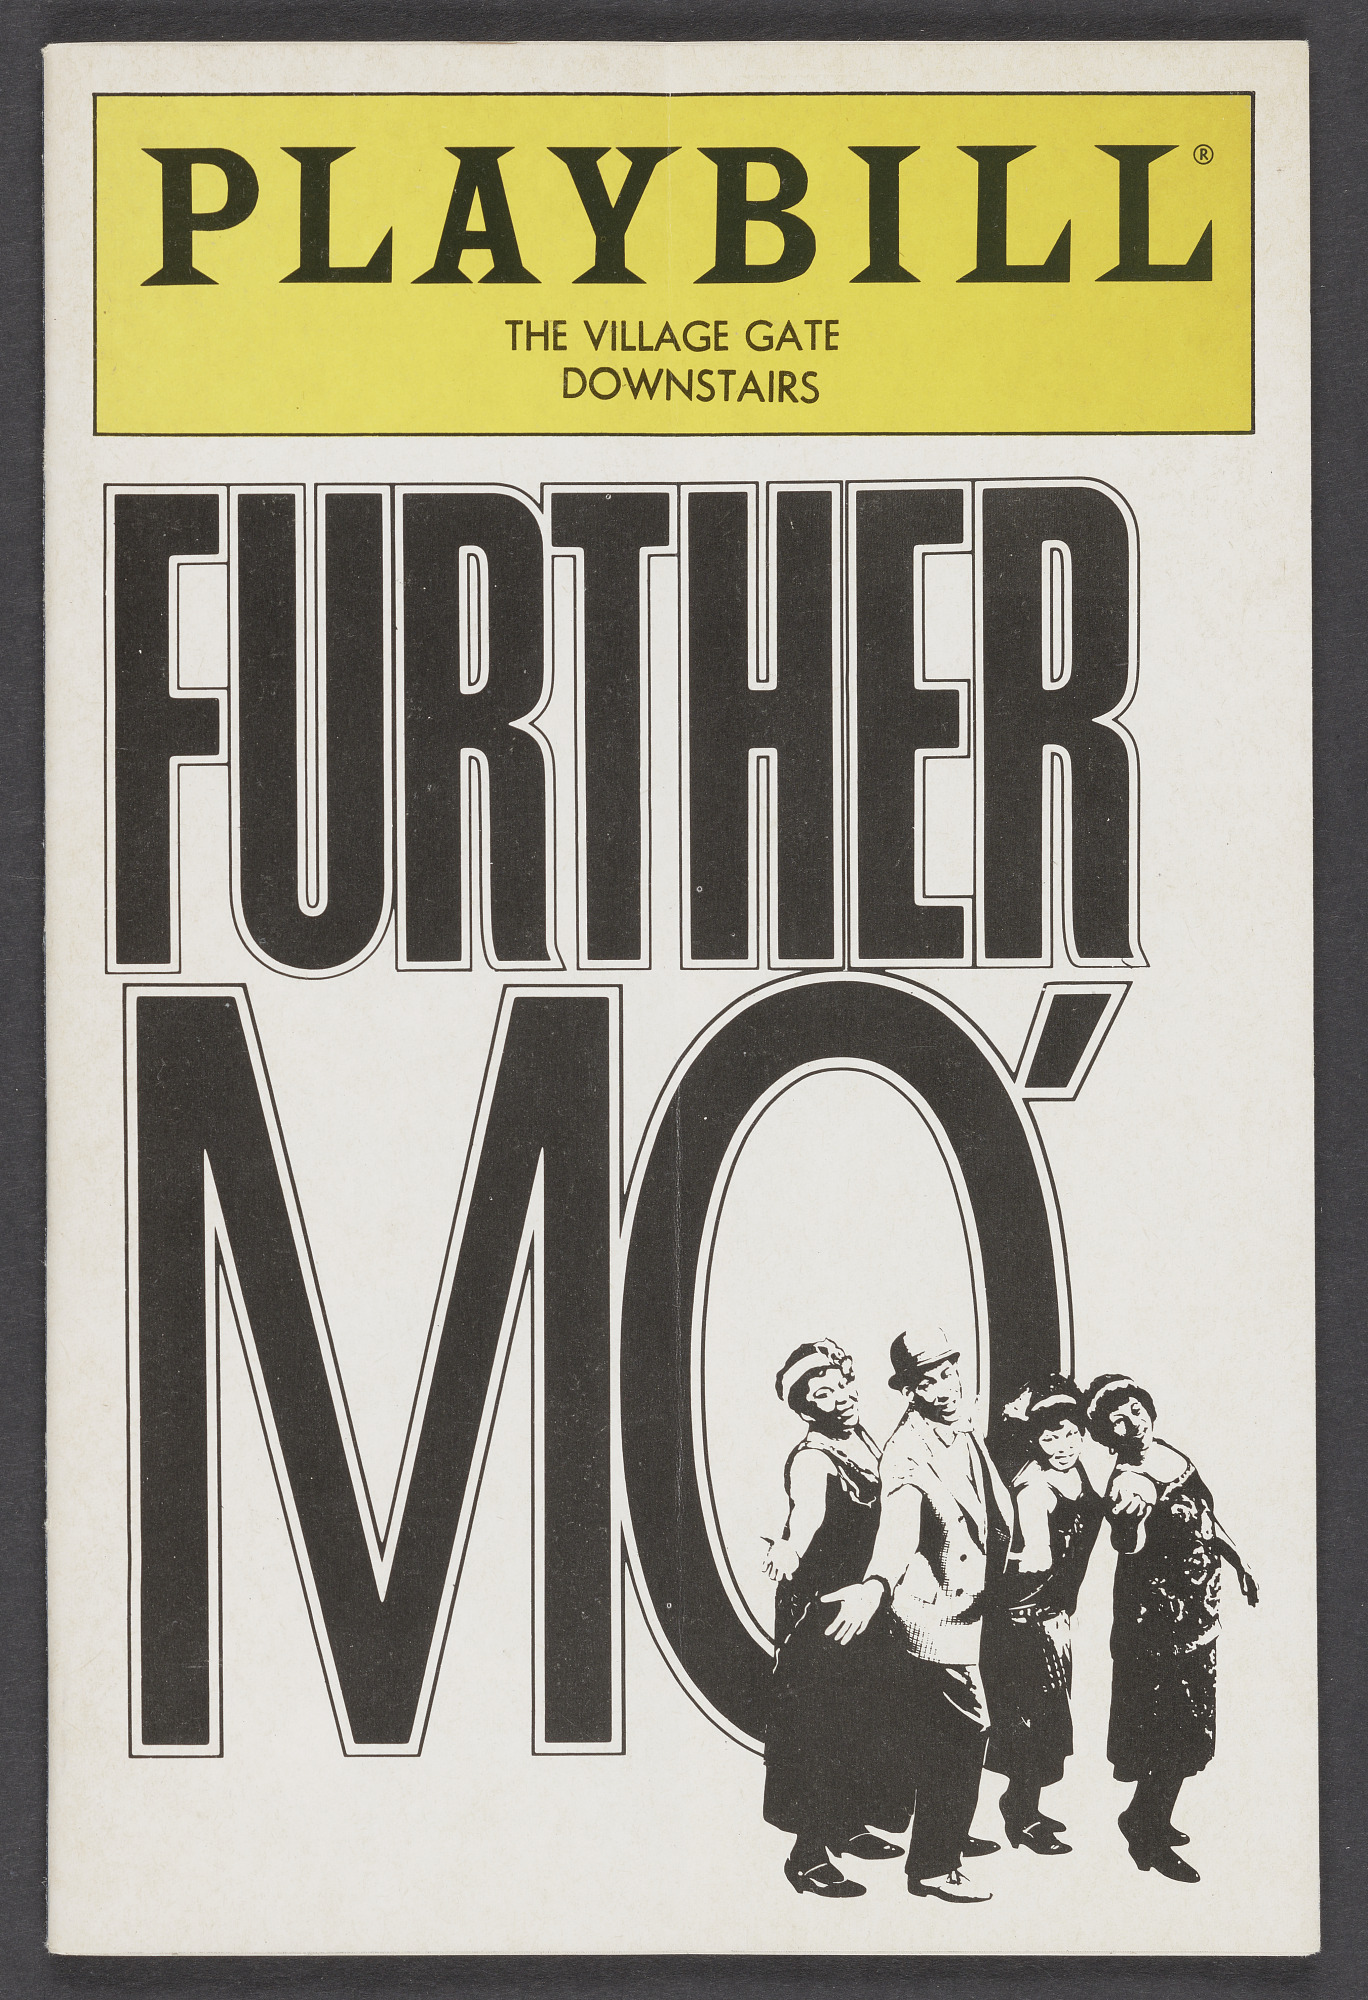 Image for Playbill for Further Mo'